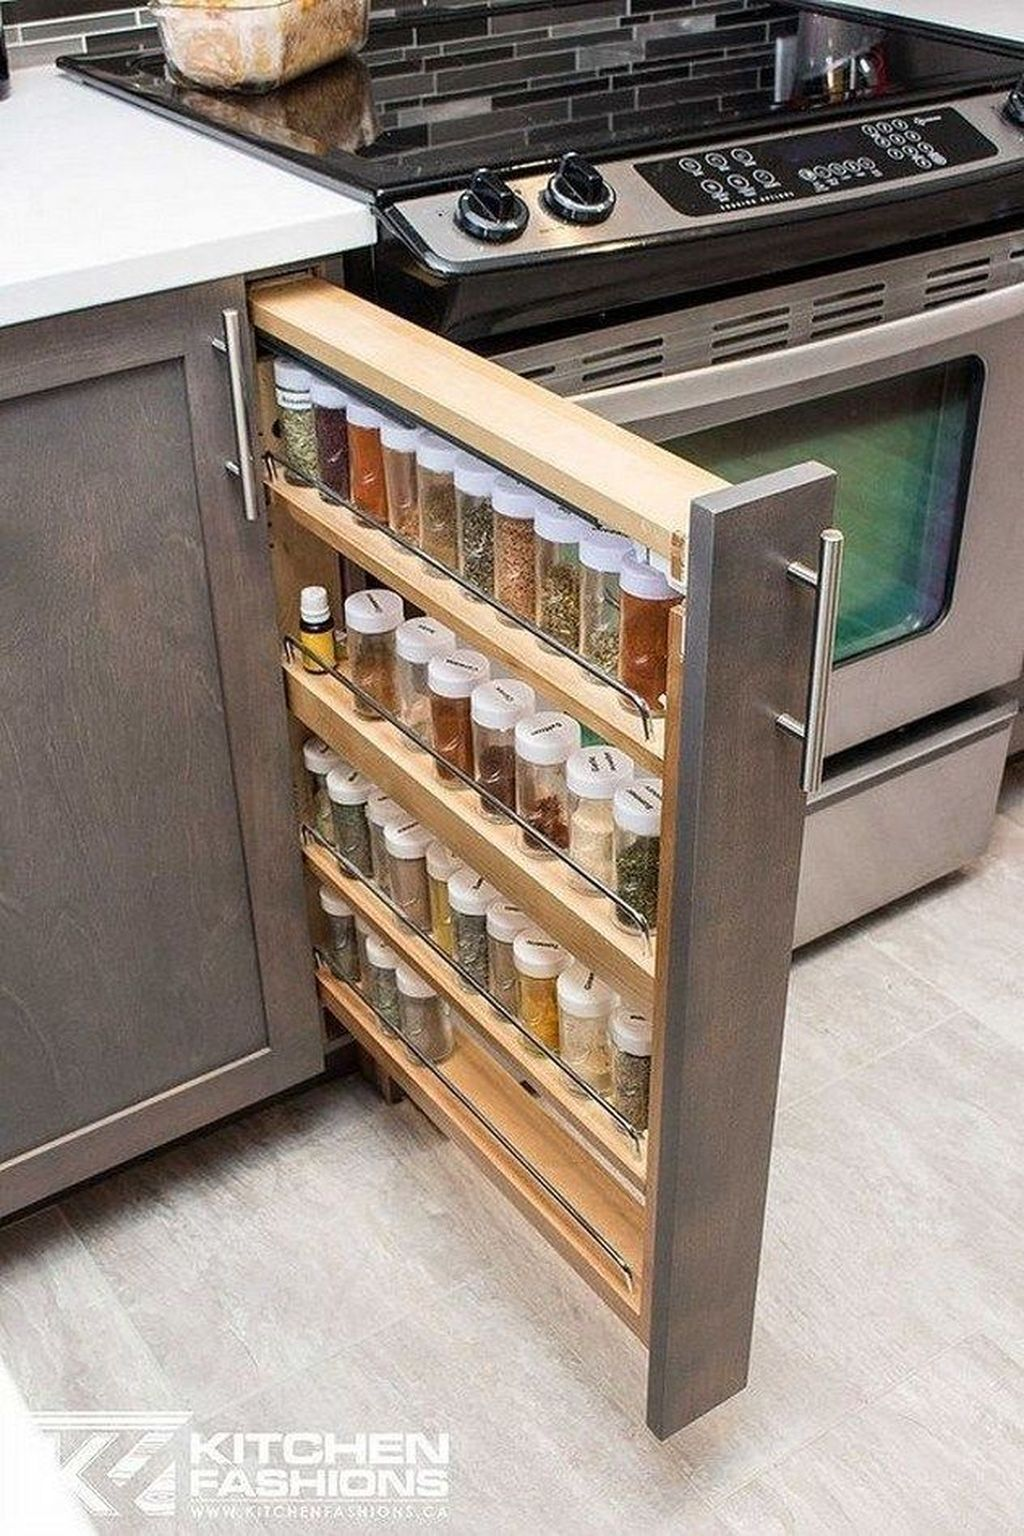 30+ Glamour Kitchen Organization Decor Ideas To Try Right Now